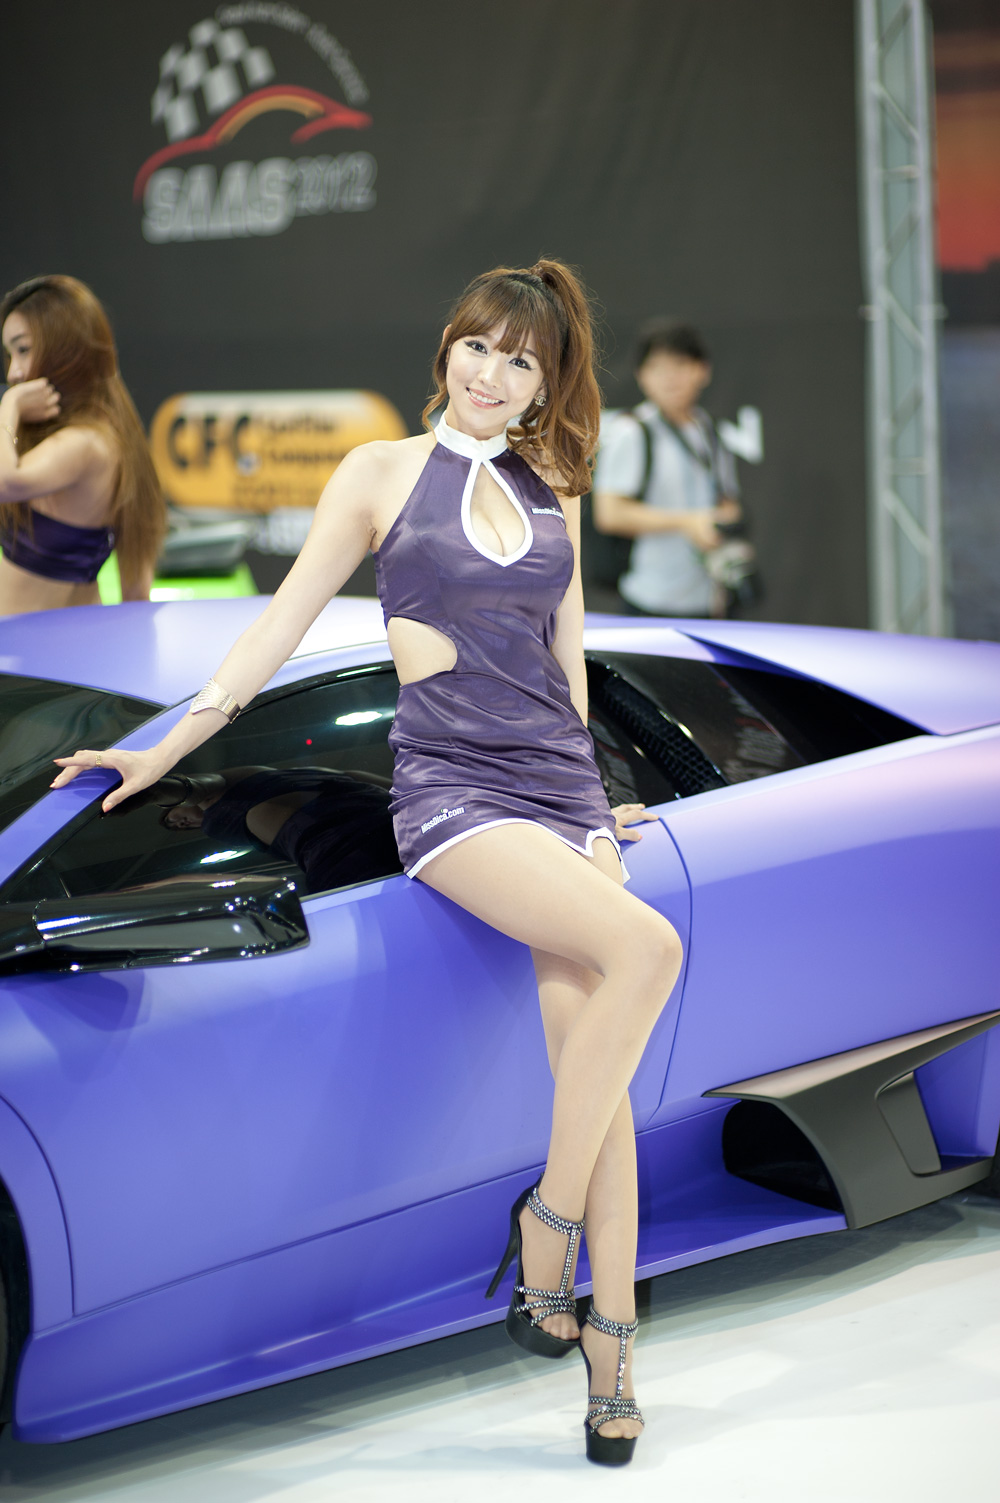 xxx nude girls: Lee Eun Hye - Seoul Auto Salon 2012